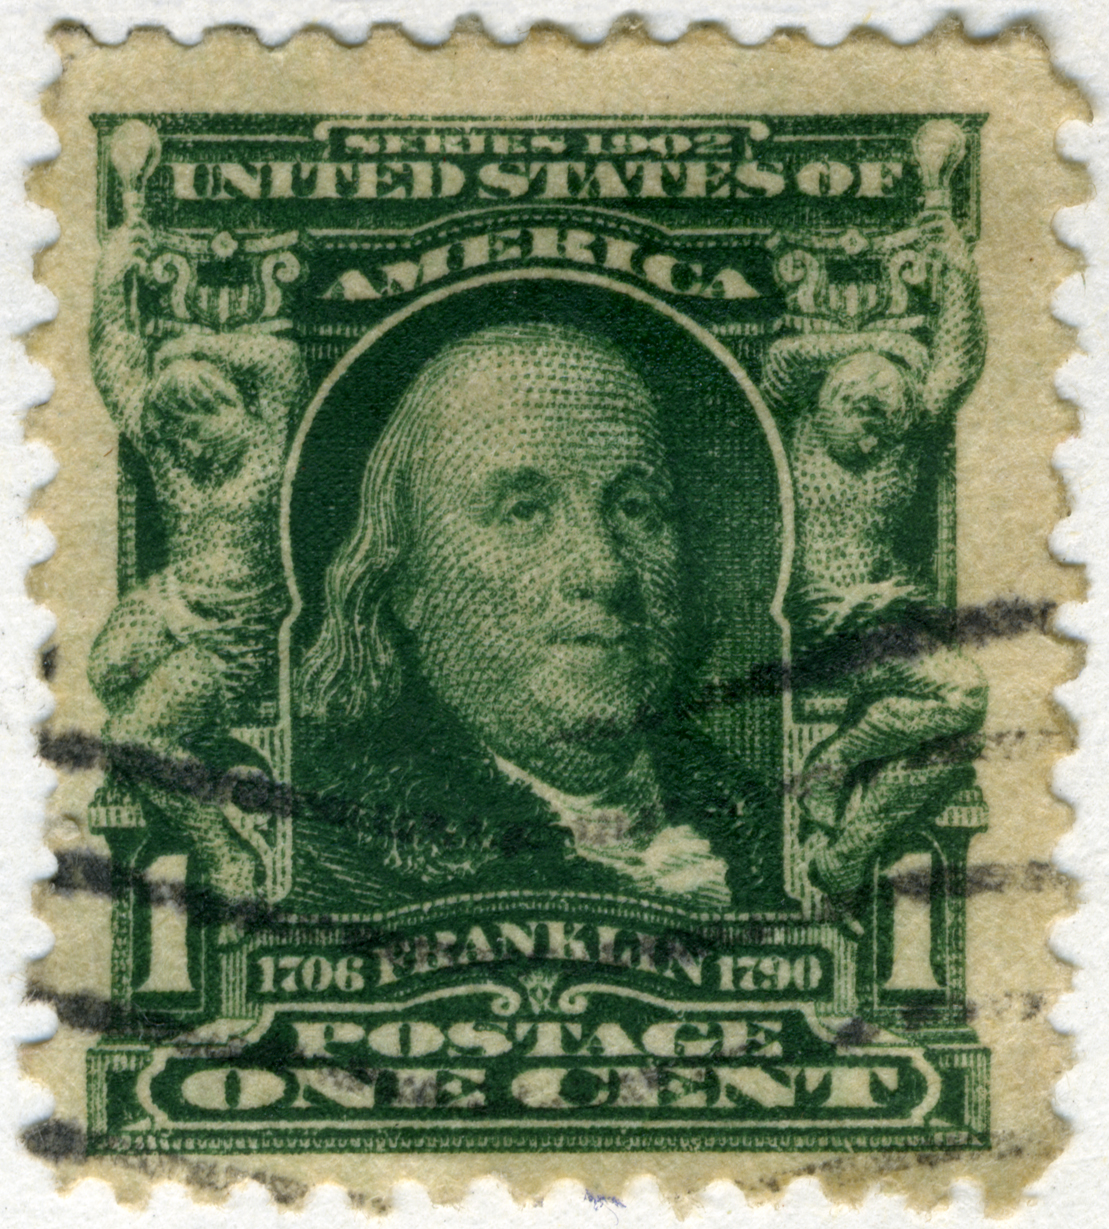 FileUS Stamp 1902 1c Franklin